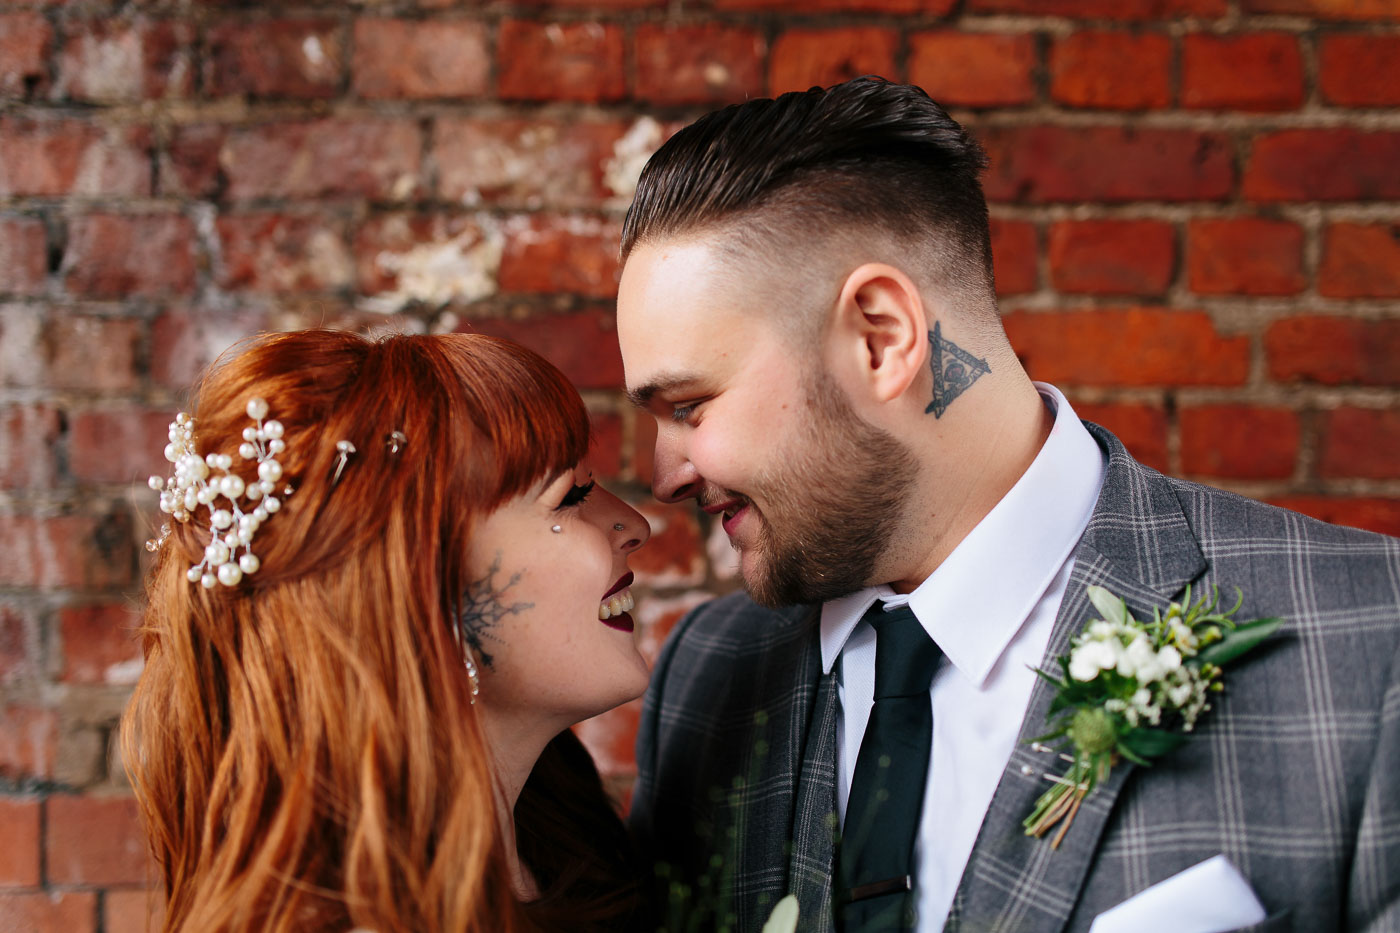 Fun and quirky couple wedding portraits